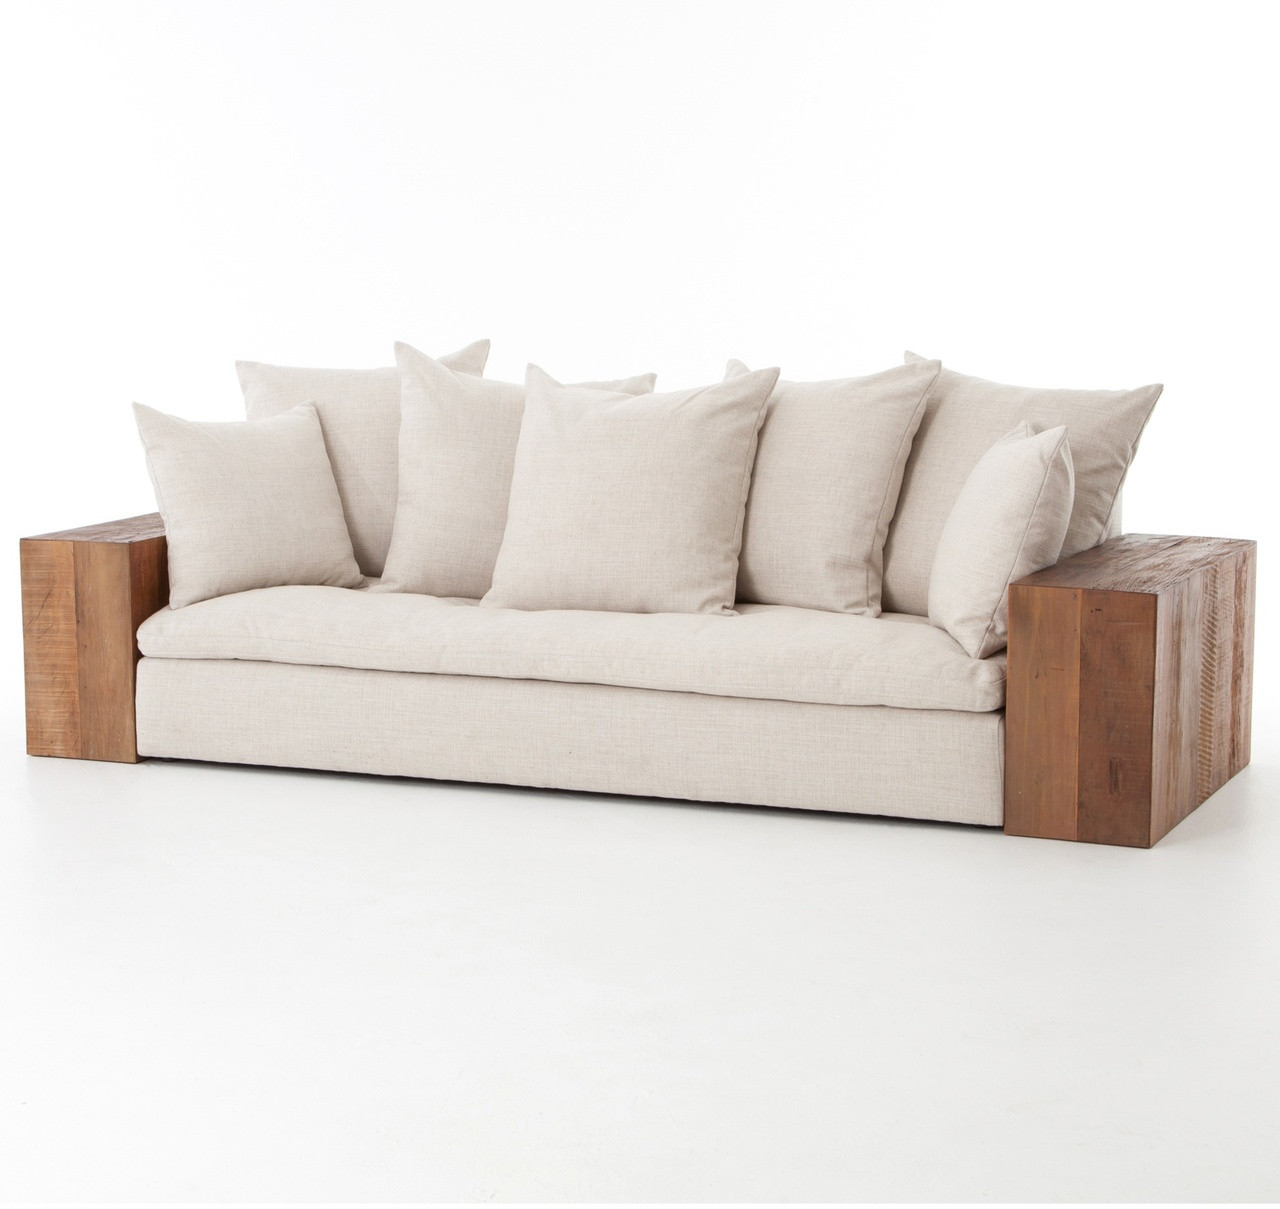 Dorset industrial loft linen sofa with peroba wood arms for Sofa industrial